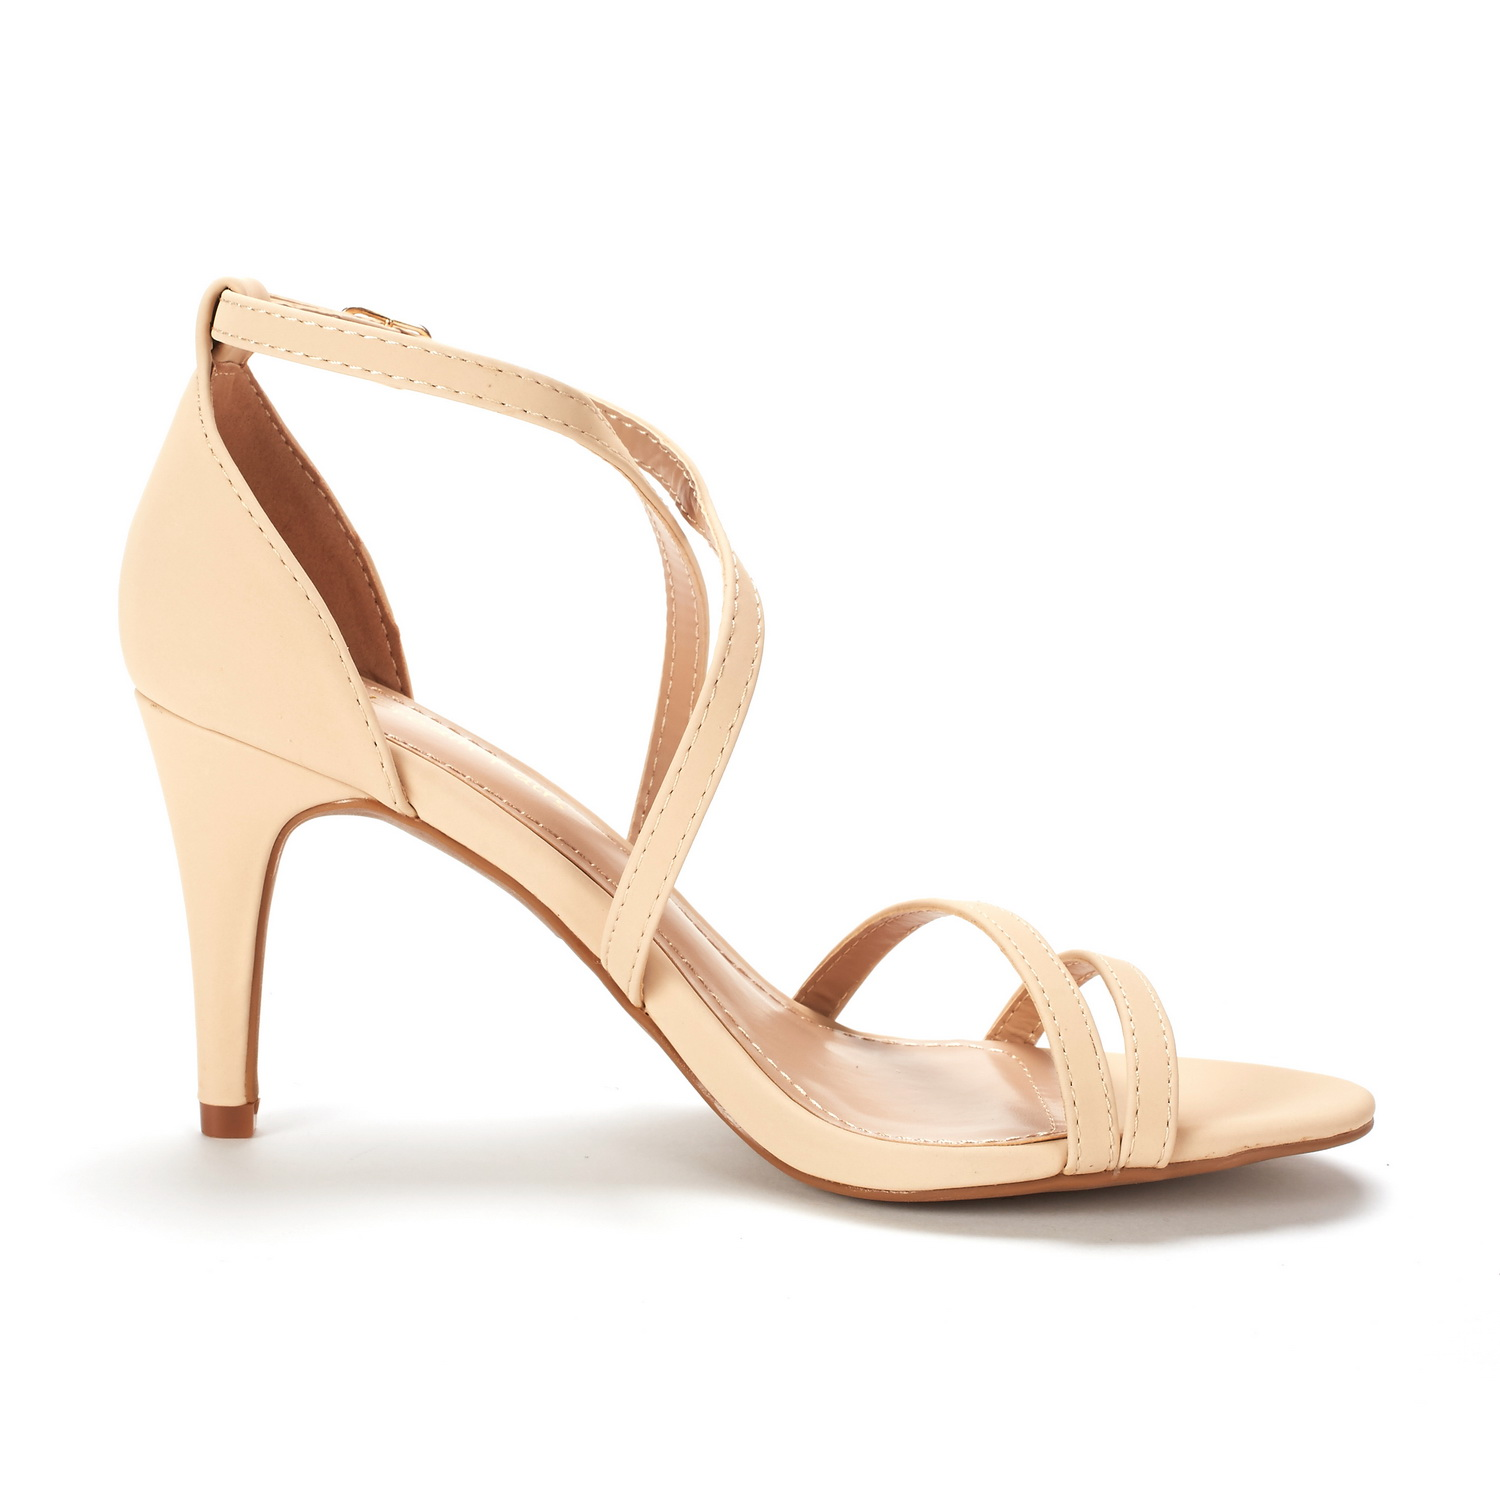 DREAM-PAIRS-Women-039-s-Ankle-Strap-High-Heel-Sandals-Dress-Shoes-Wedding-Party thumbnail 36